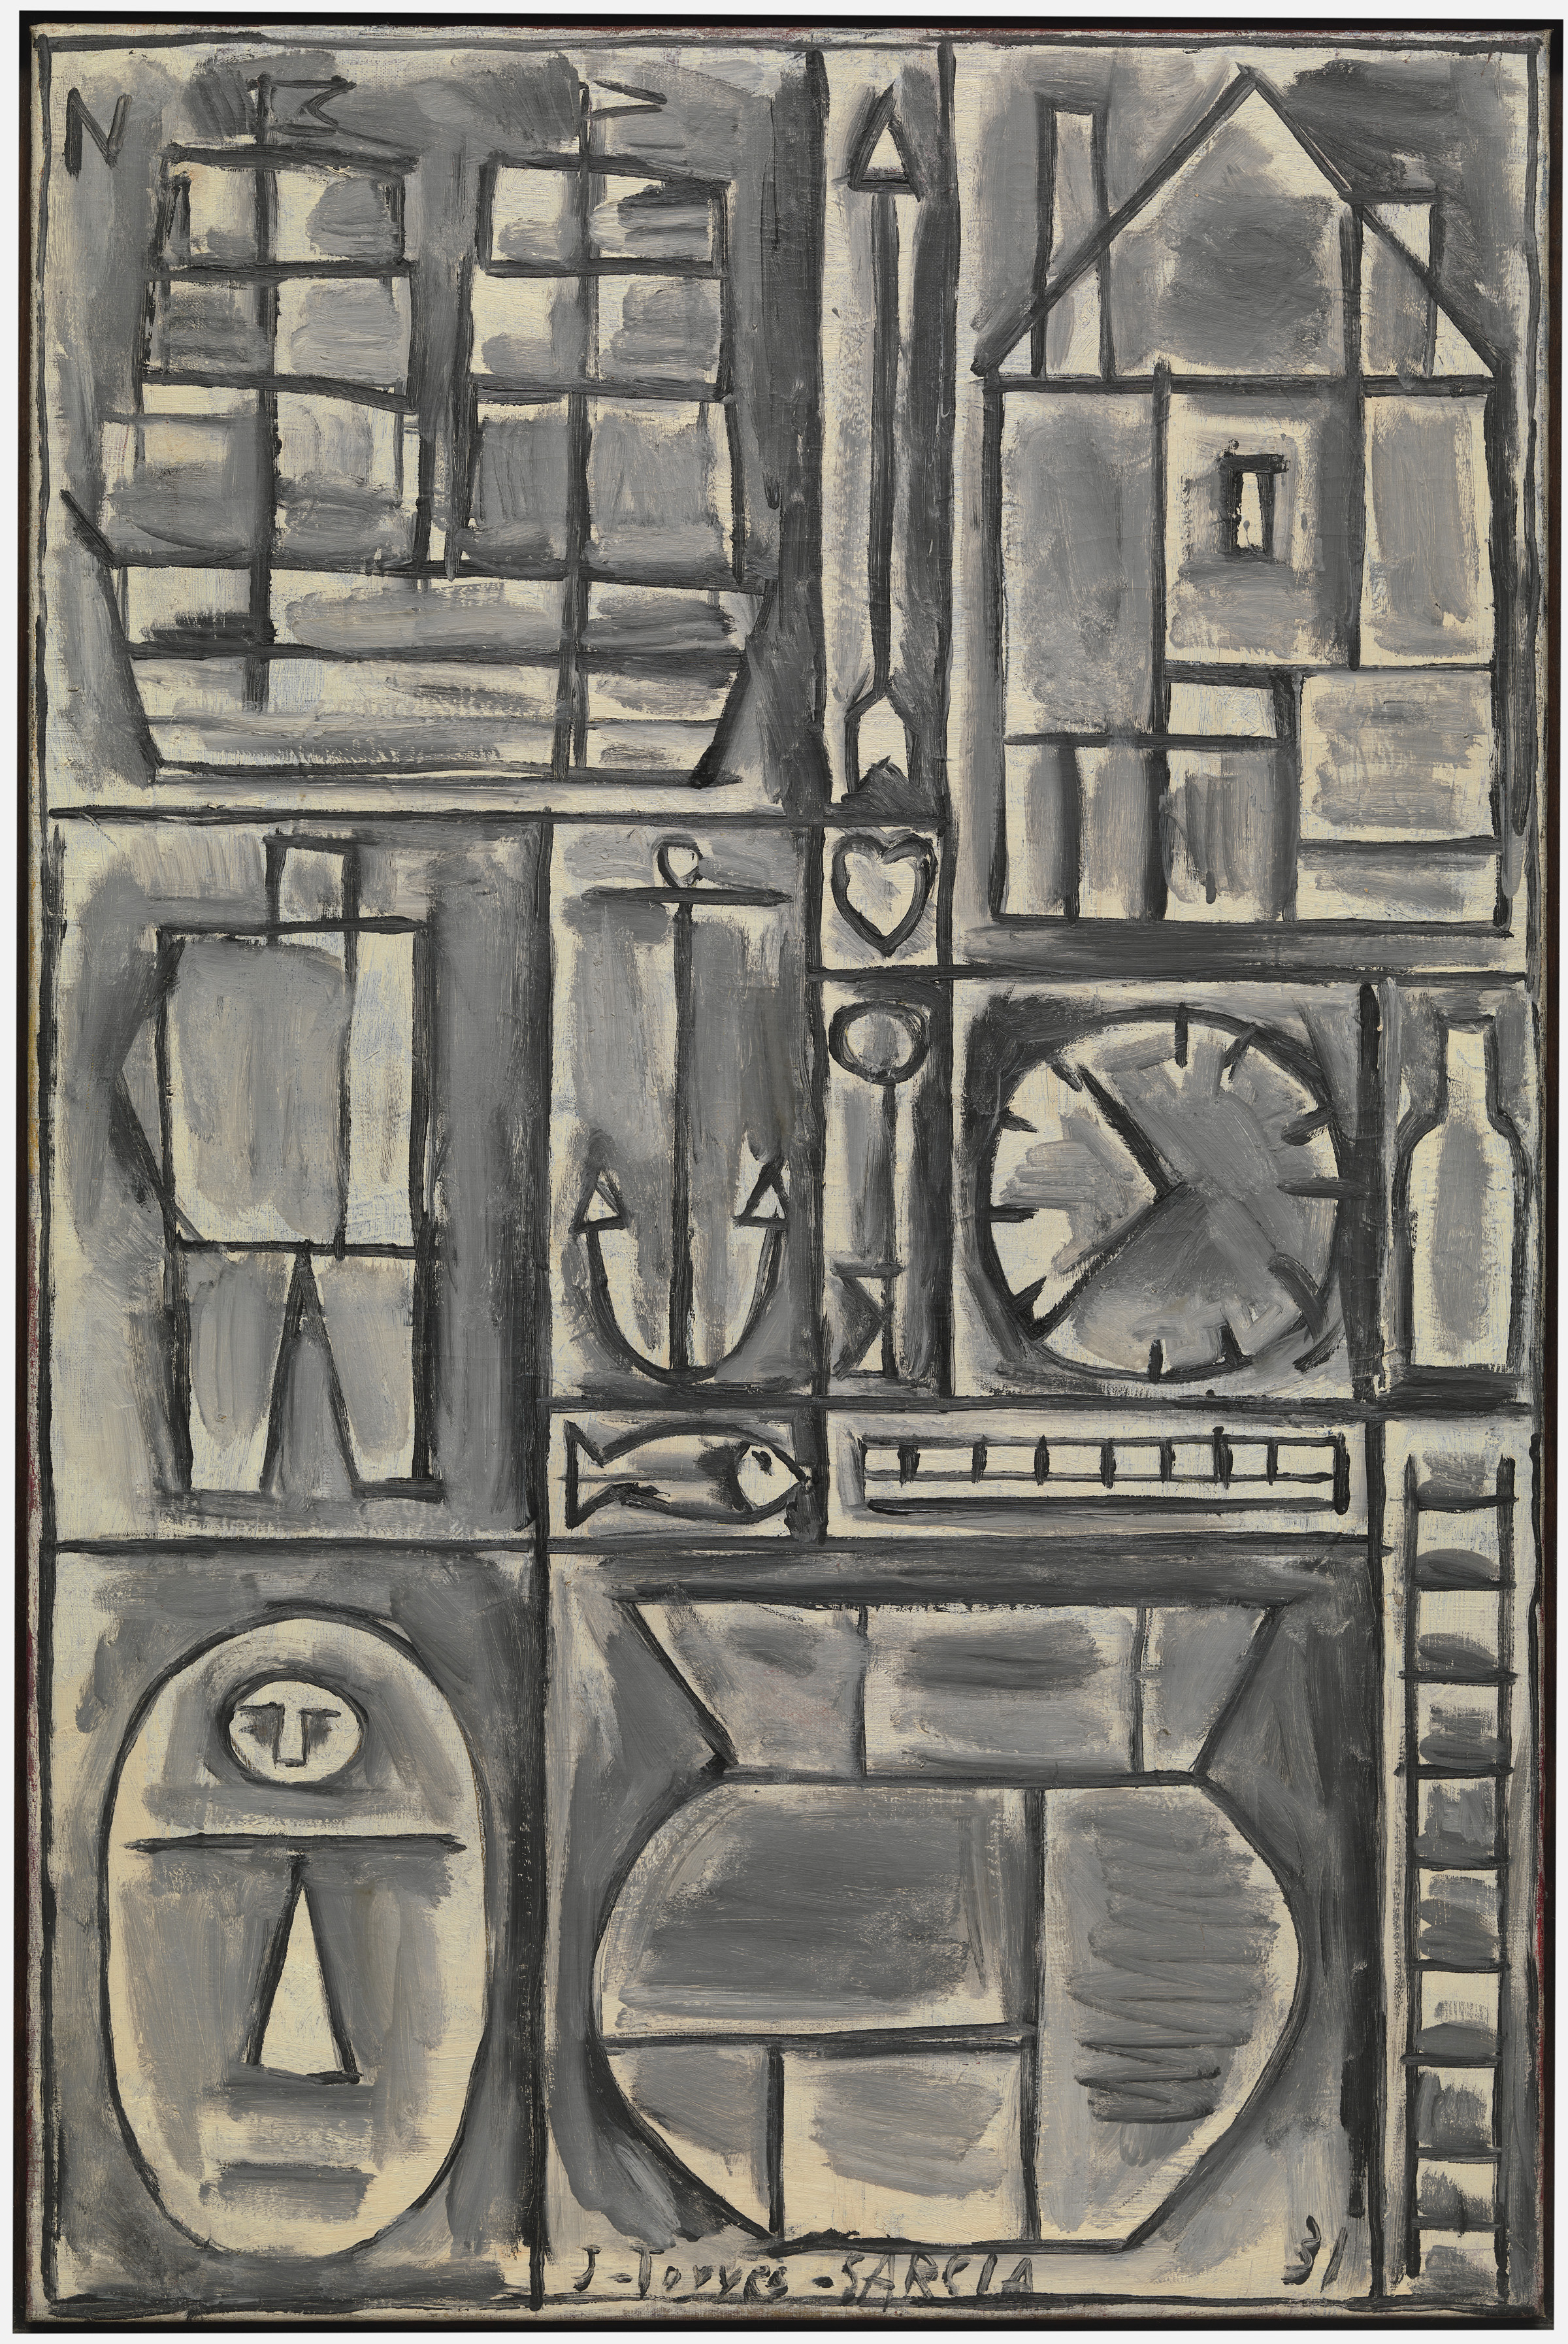 Joaquín Torres García (Uruguayan, 1874–1949). Composition. 1931. Oil on canvas. 36 1/8 x 24″ (91.7 x 61 cm). The Museum of Modern Art, New York. Gift of Larry Aldrich, 1956. © Sucesión Joaquín Torres-García, Montevideo 2015. Photo Thomas Griesel.